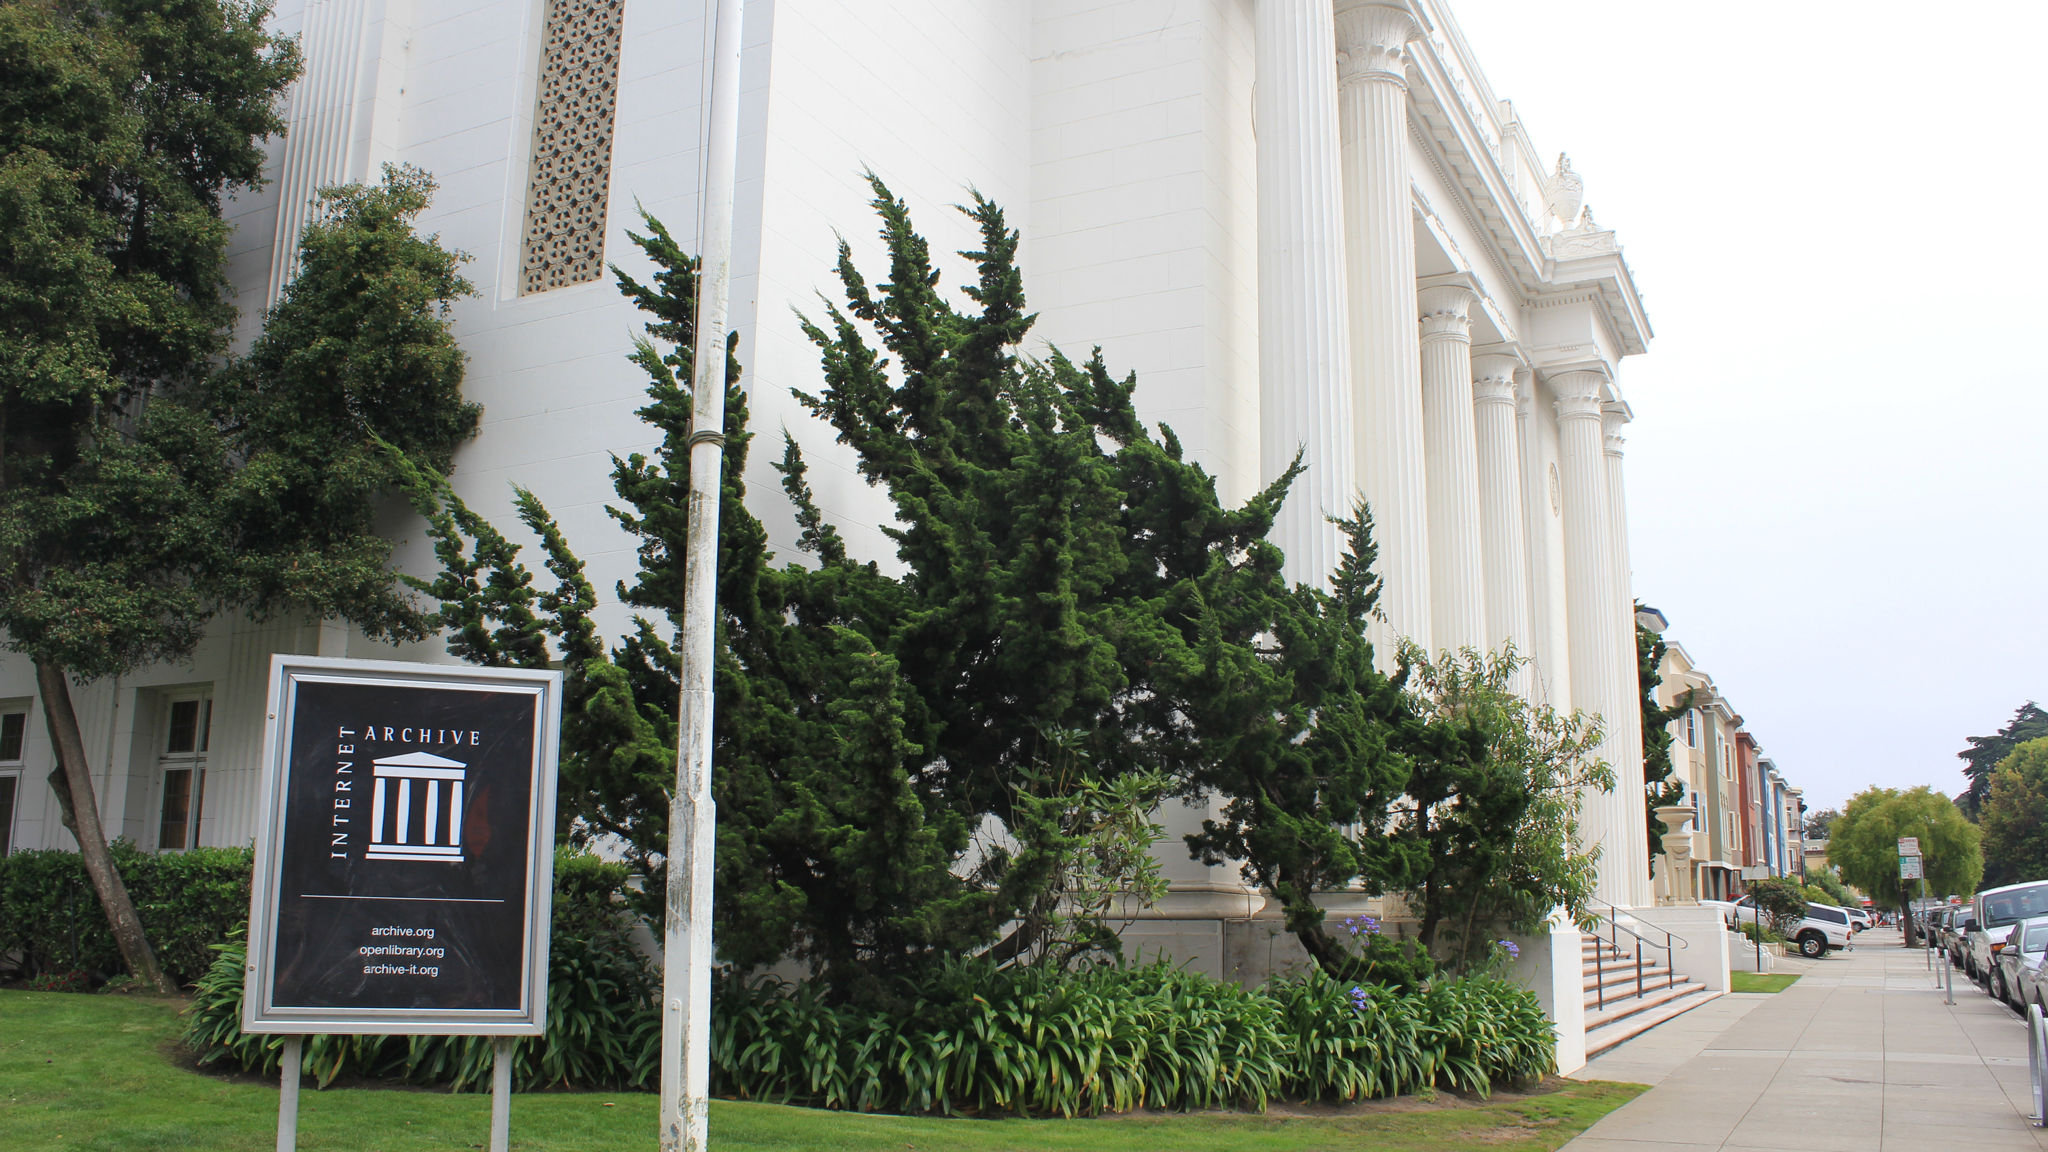 How the Internet Archive is waging war on misinformation